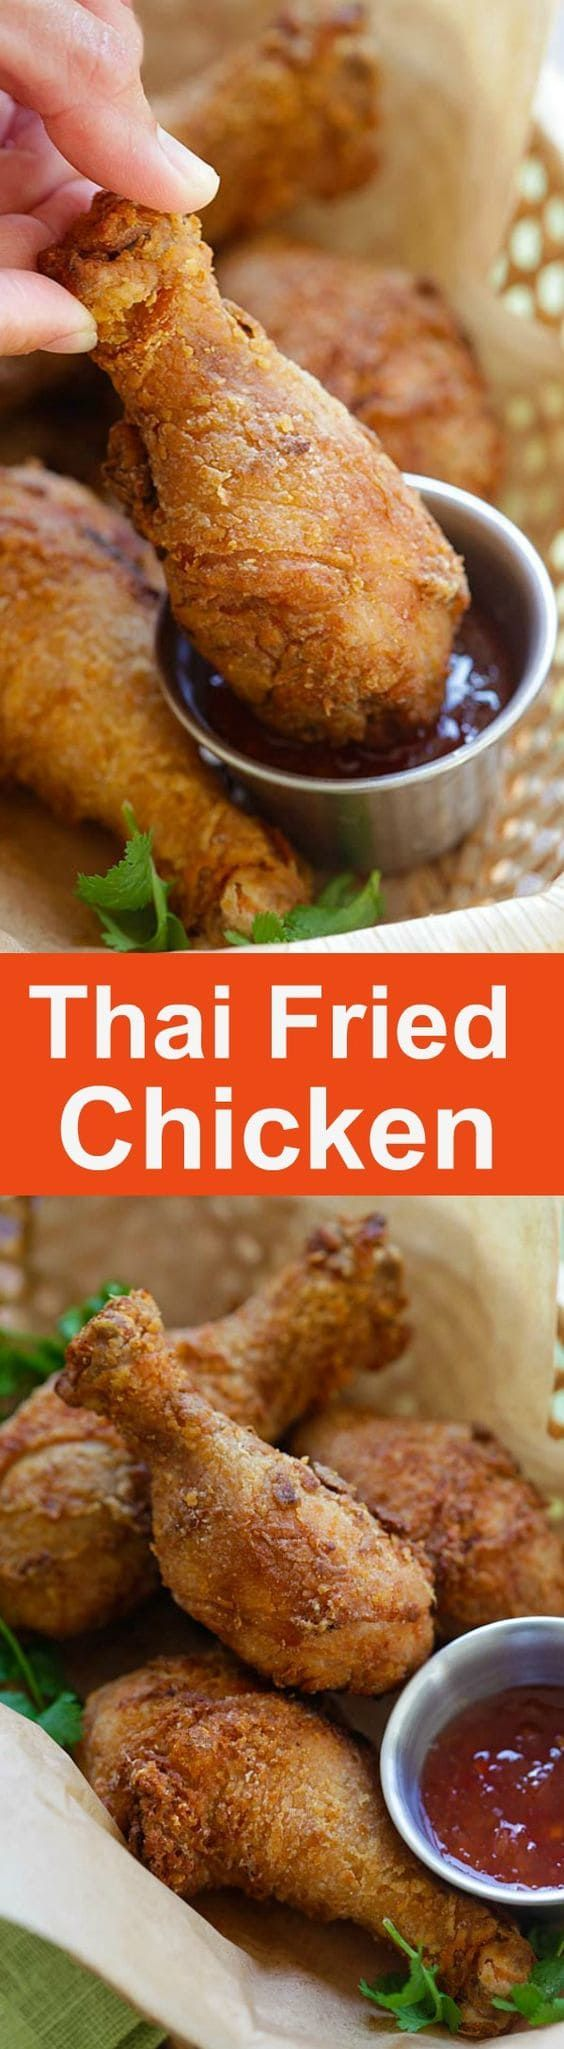 Thai Fried Chicken - the BEST fried chicken recipe ever, marinated with cilantro, garlic and Asian seasonings. Crispy, moist and so good | rasamalaysia.com